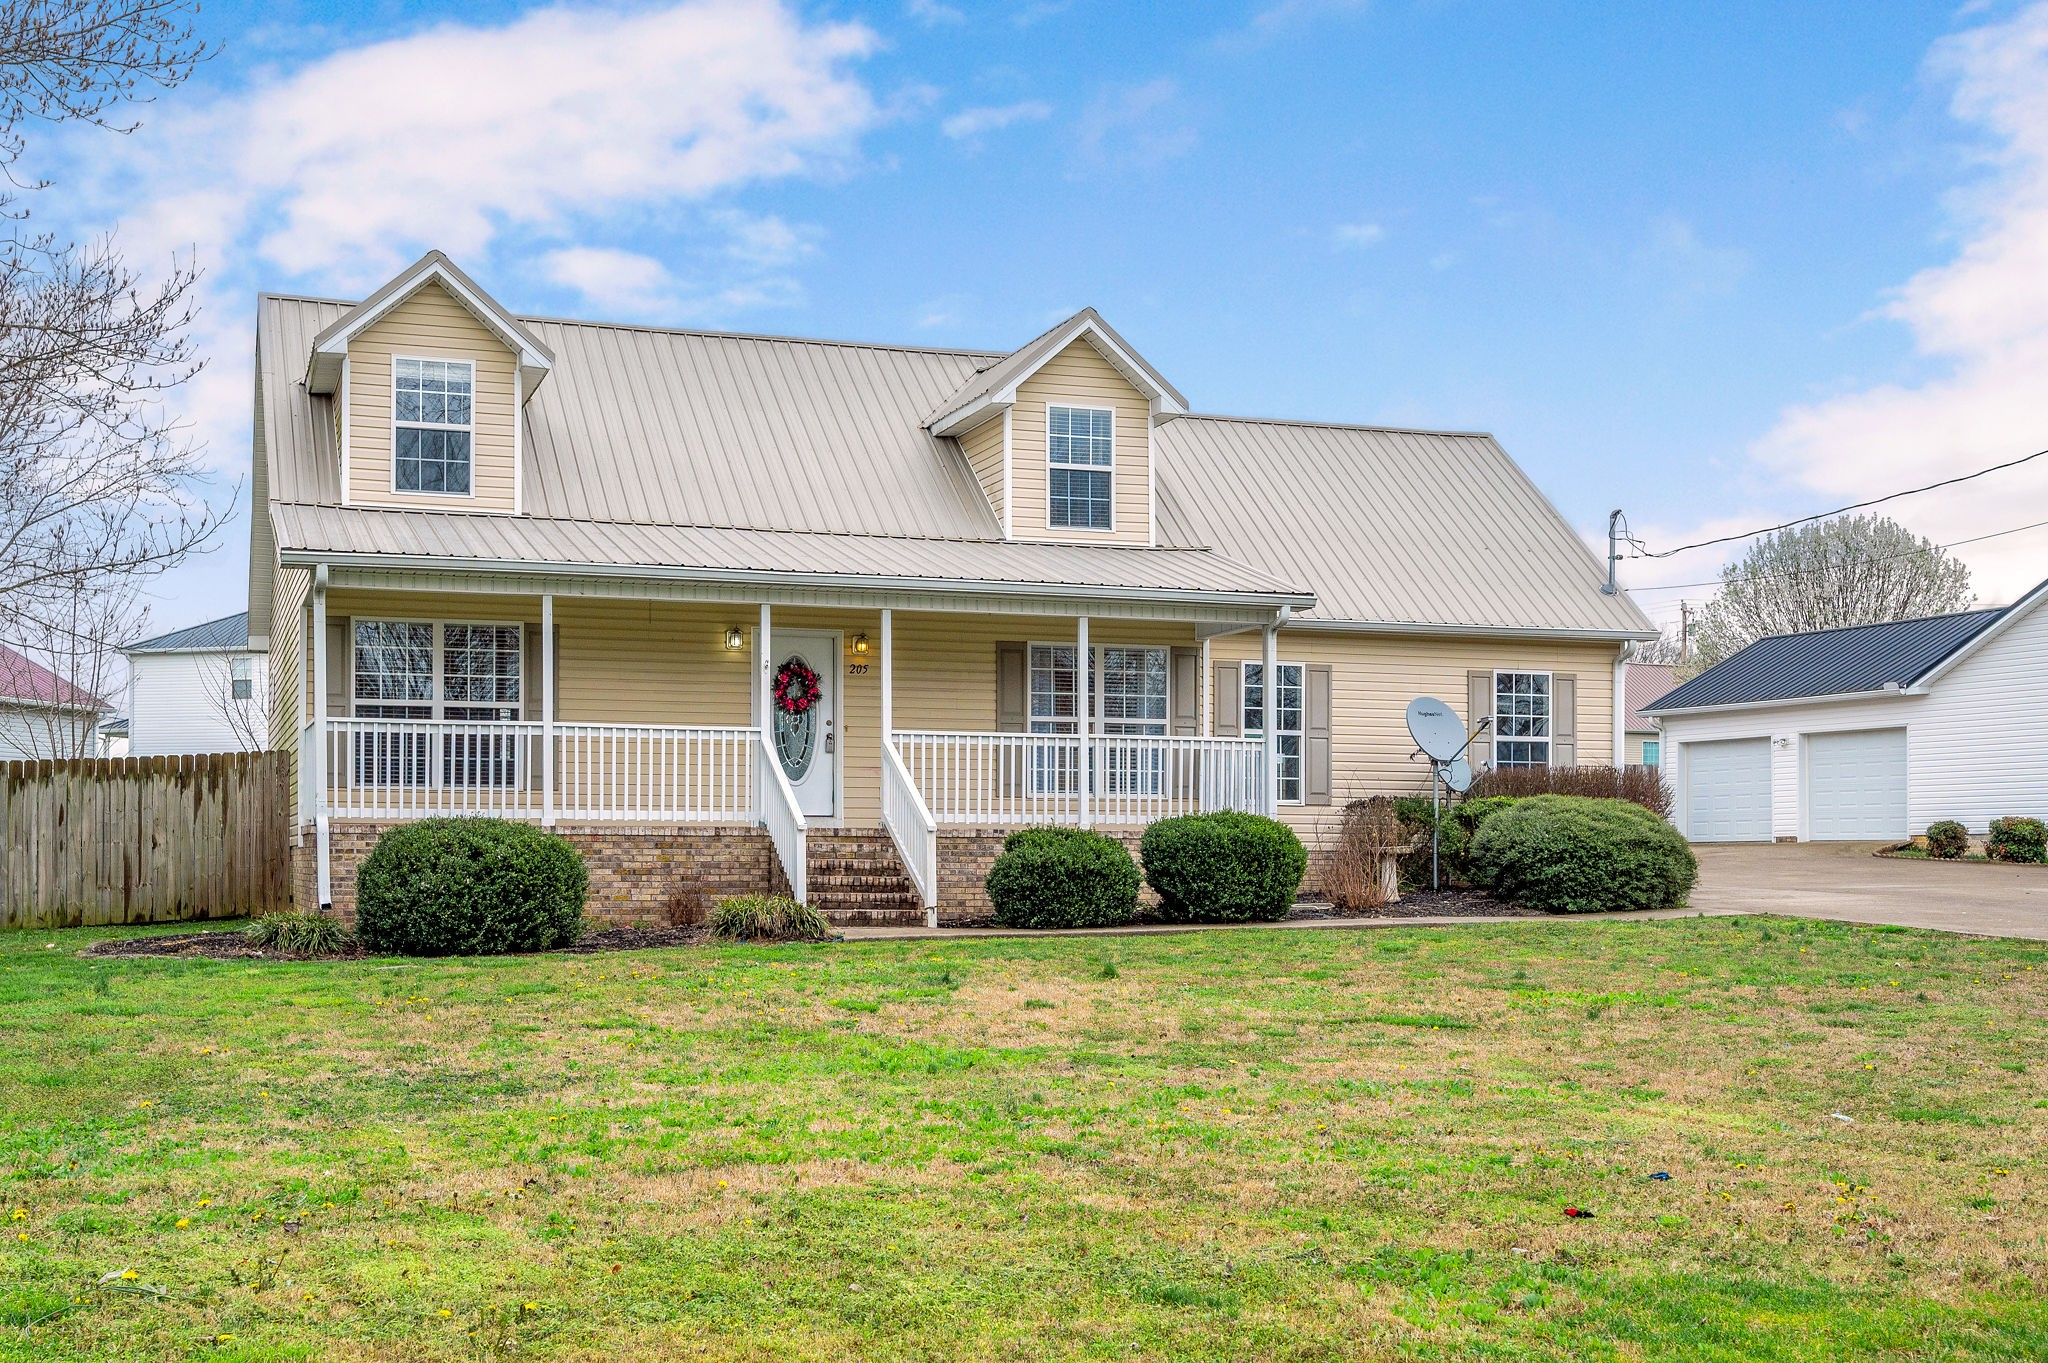 205 Cemetery Rd, Bell Buckle, TN 37020 - Bell Buckle, TN real estate listing